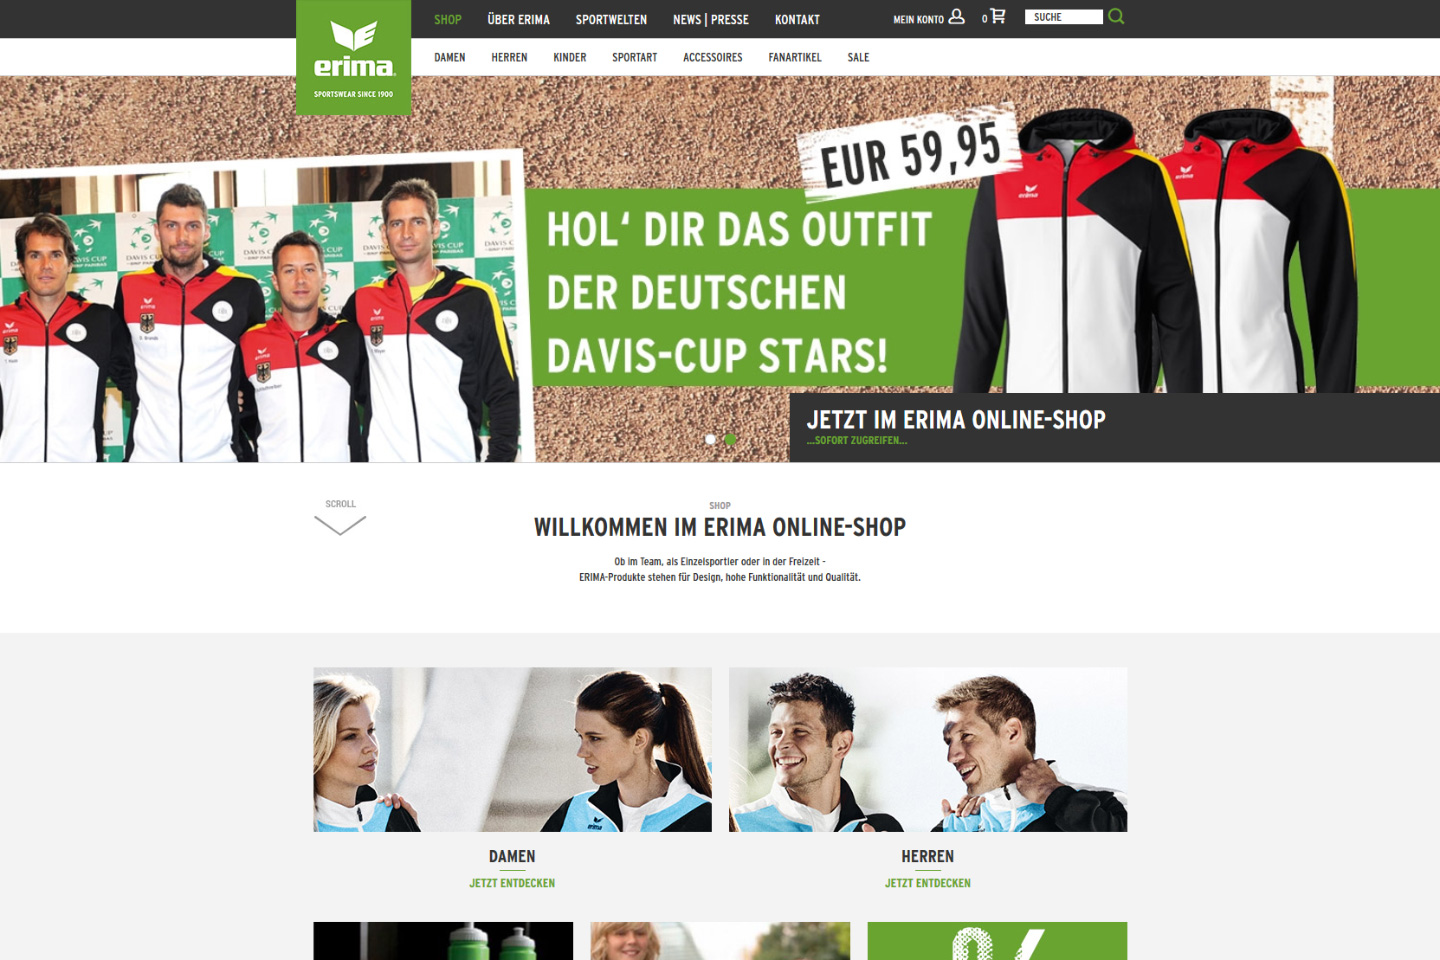 Erima - Online-Shop und Website Detail 02